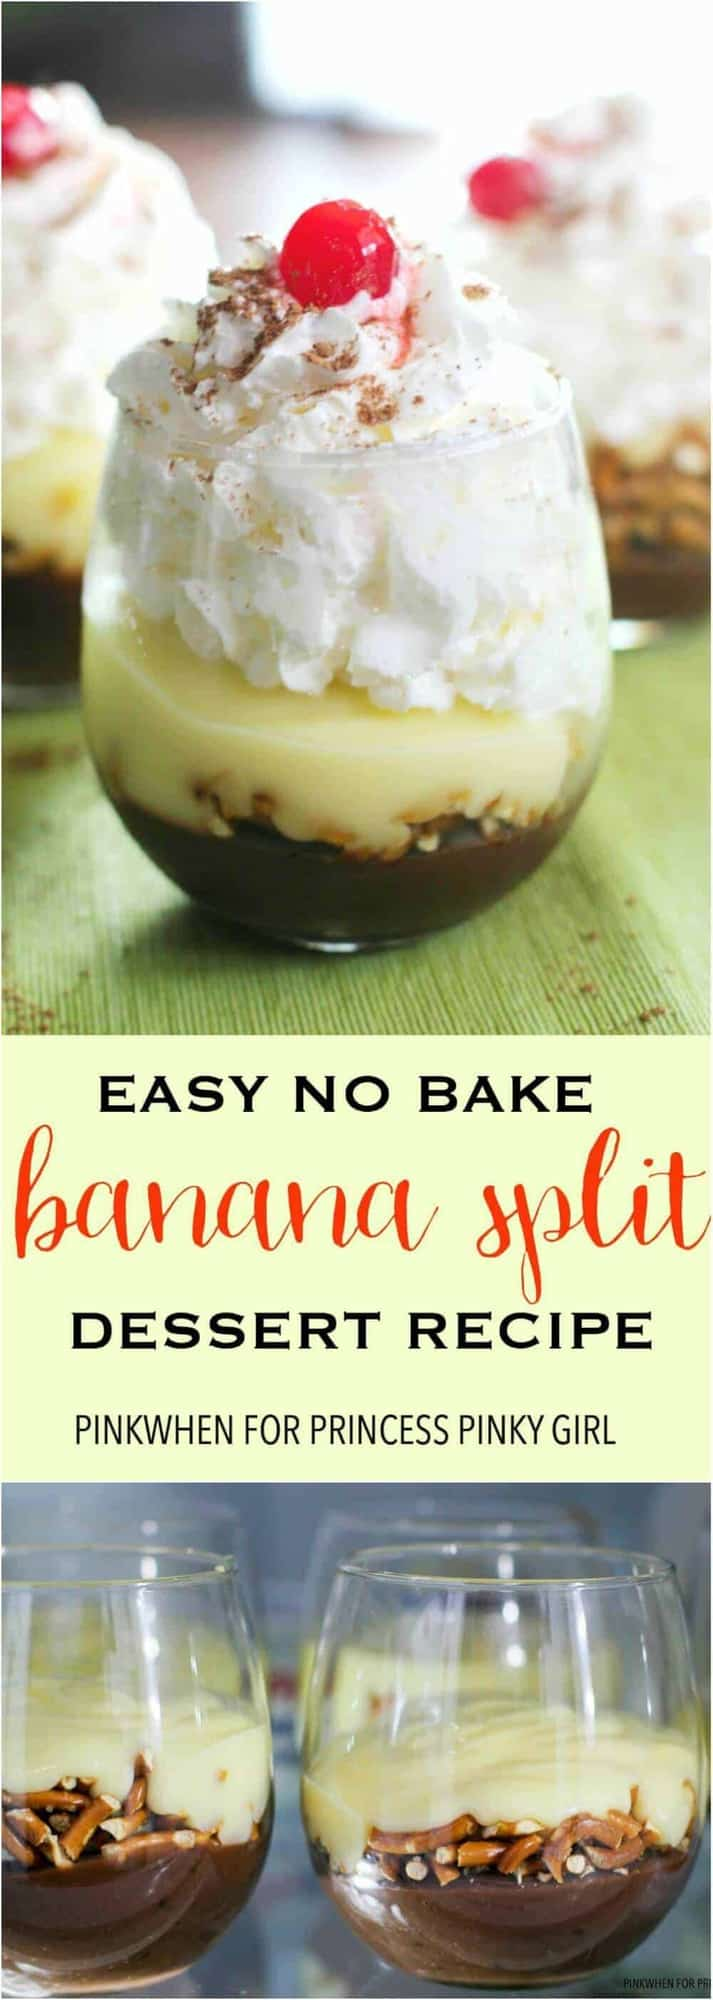 This Easy Banana Split Dessert recipe is the perfect Summer no bake dessert recipe of the year.